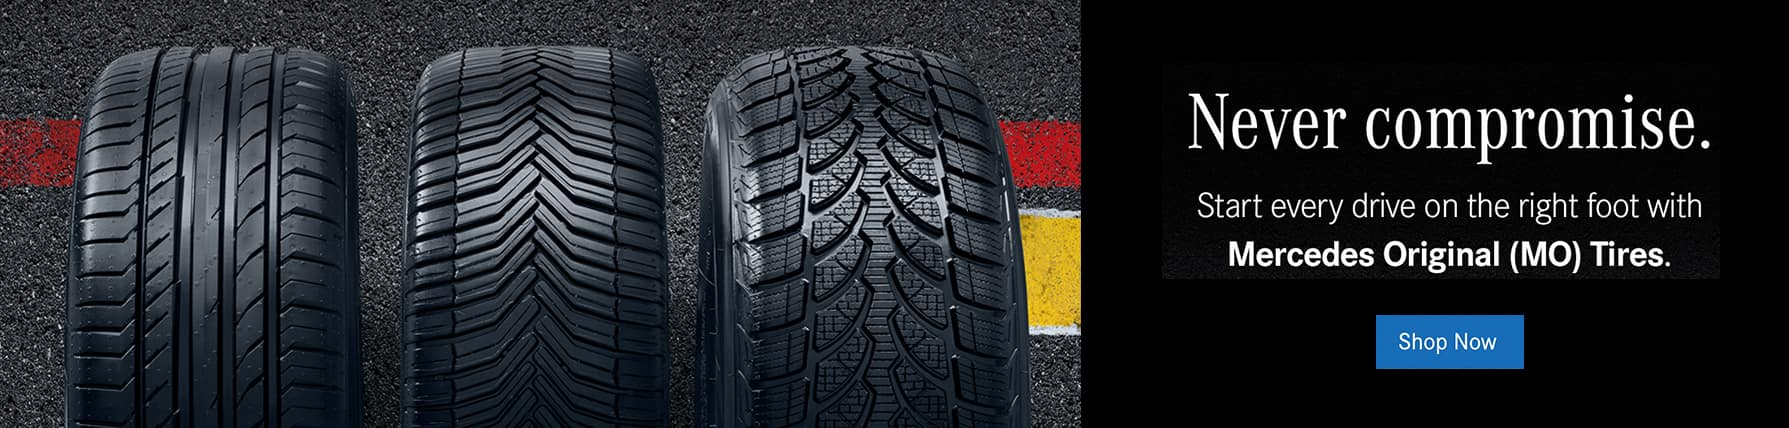 Shop Mercedes-Benz of Draper Tire Center